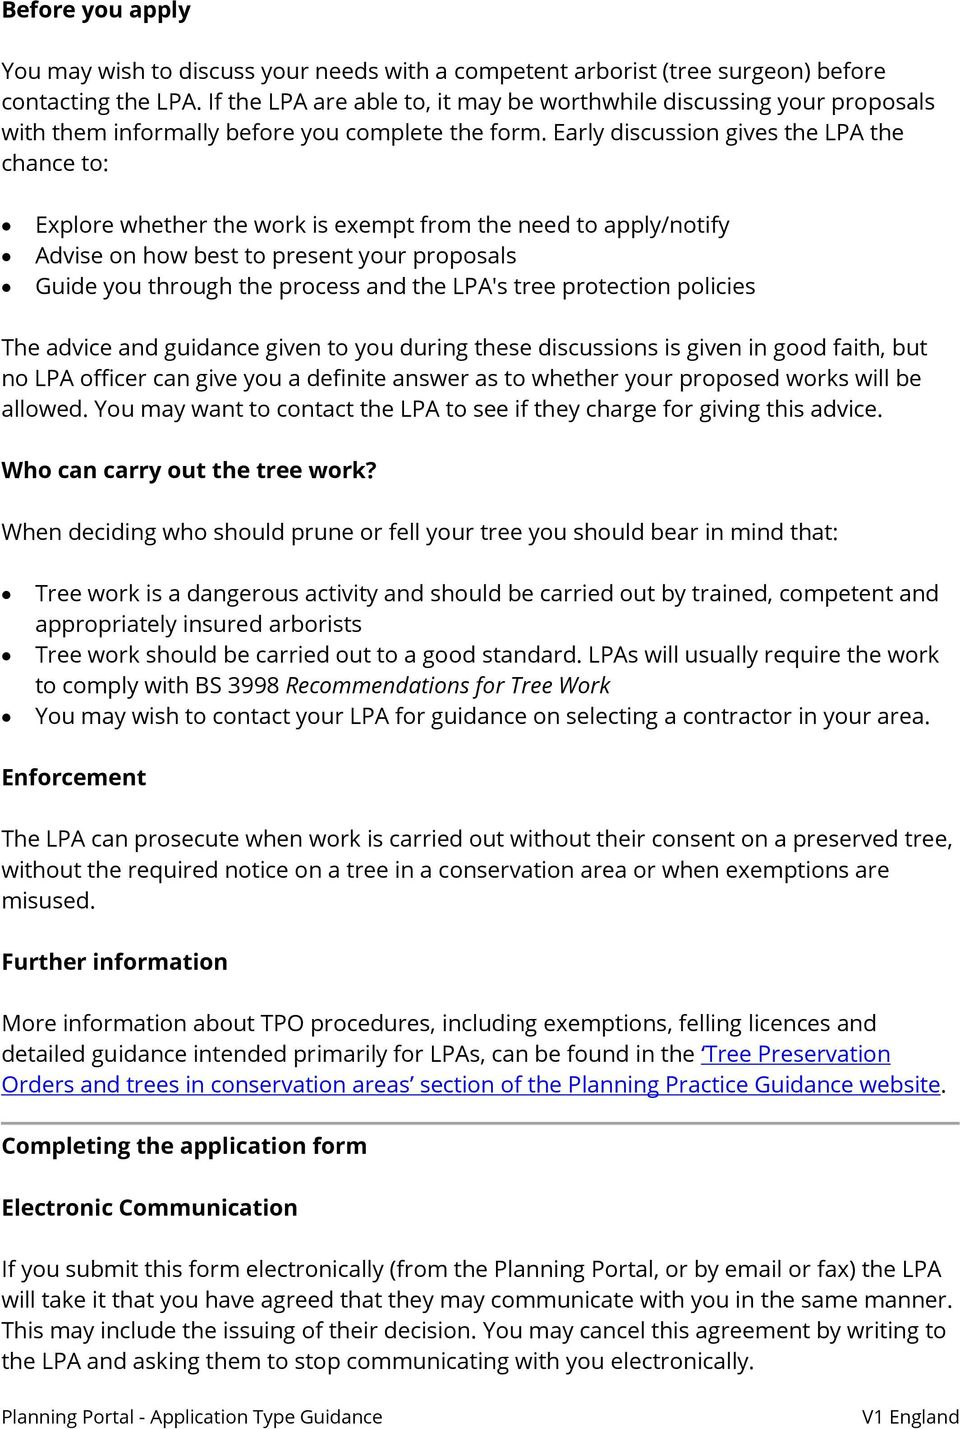 Early discussion gives the LPA the chance to: Explore whether the work is exempt from the need to apply/notify Advise on how best to present your proposals Guide you through the process and the LPA's